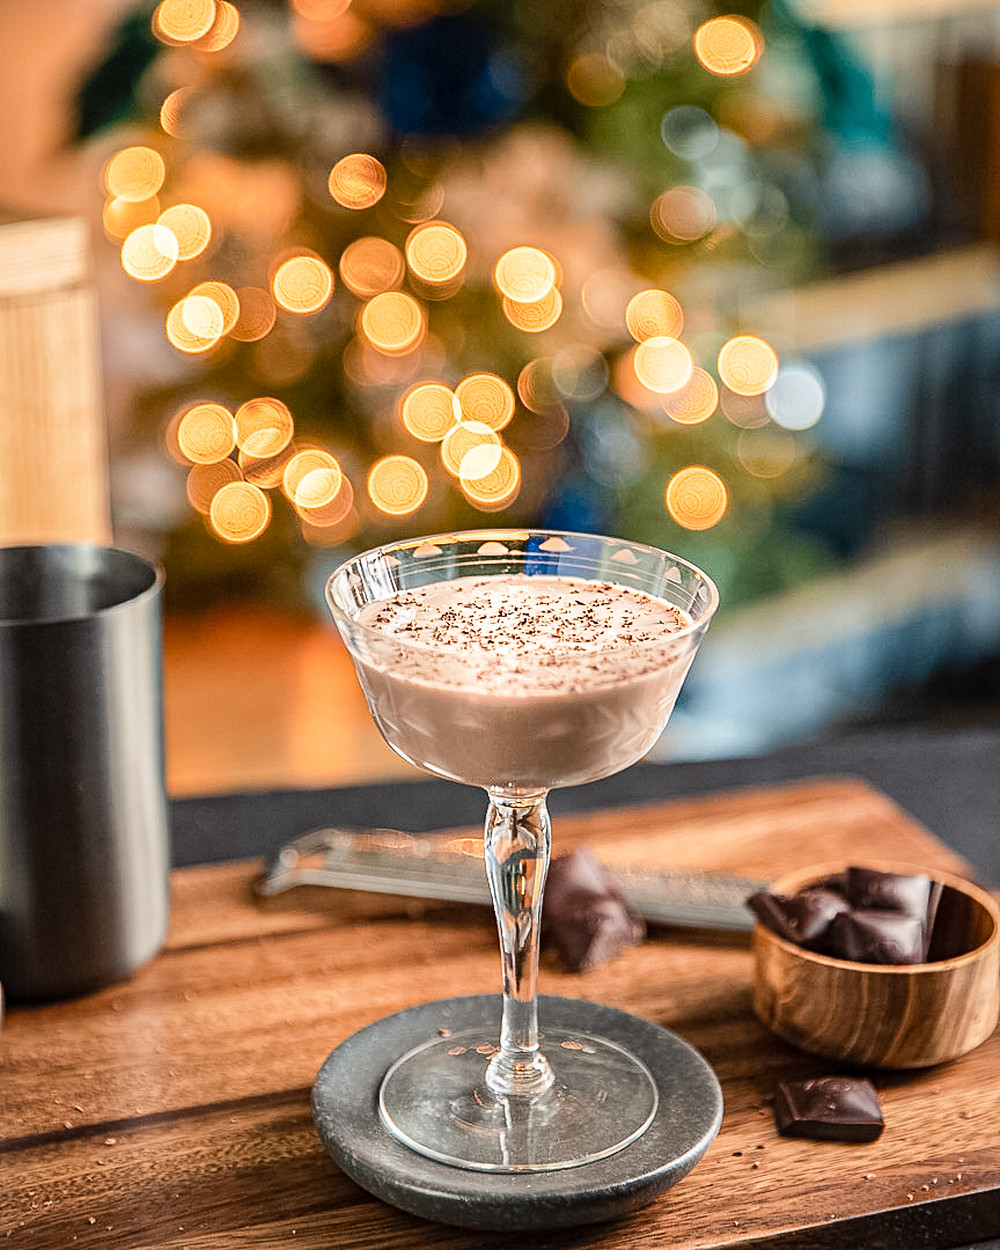 Drink photography Chocolate Amaretto Cocktail in coupe glass with chocolate shavings and christmas tree in the back